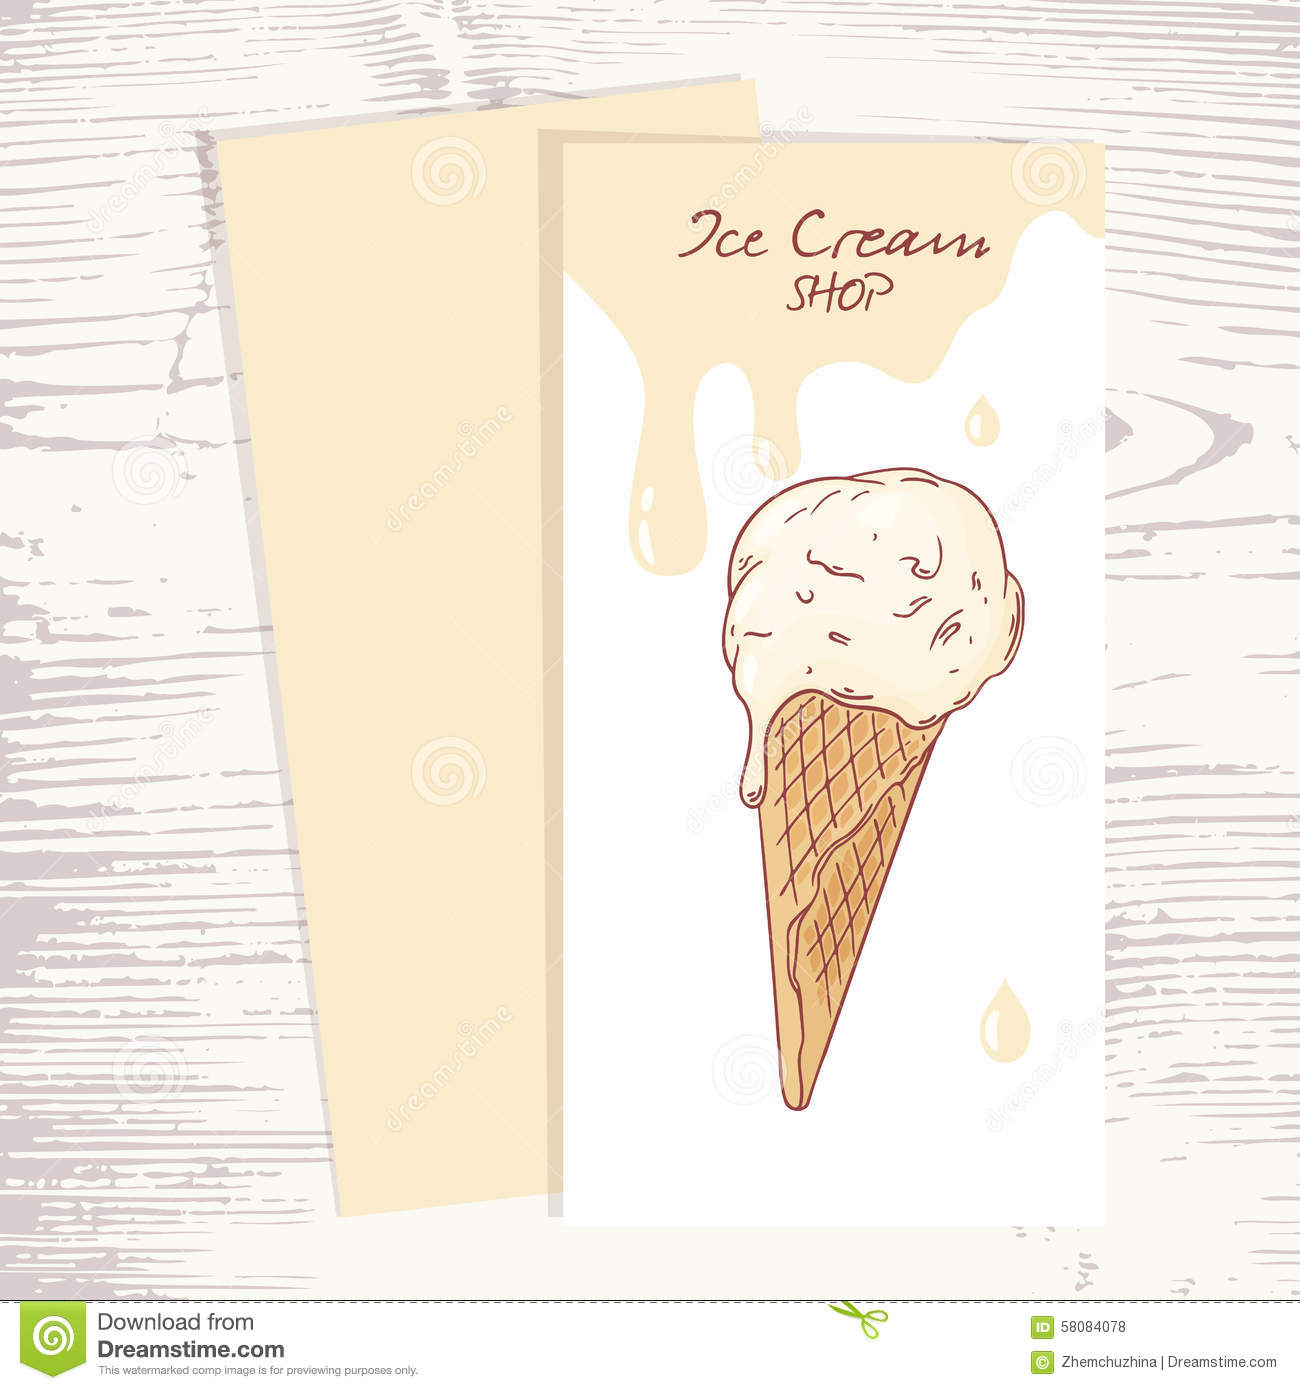 Cafe menu template with hand drawn ice cream in a illustration cafe menu template with hand drawn ice cream in a maxwellsz